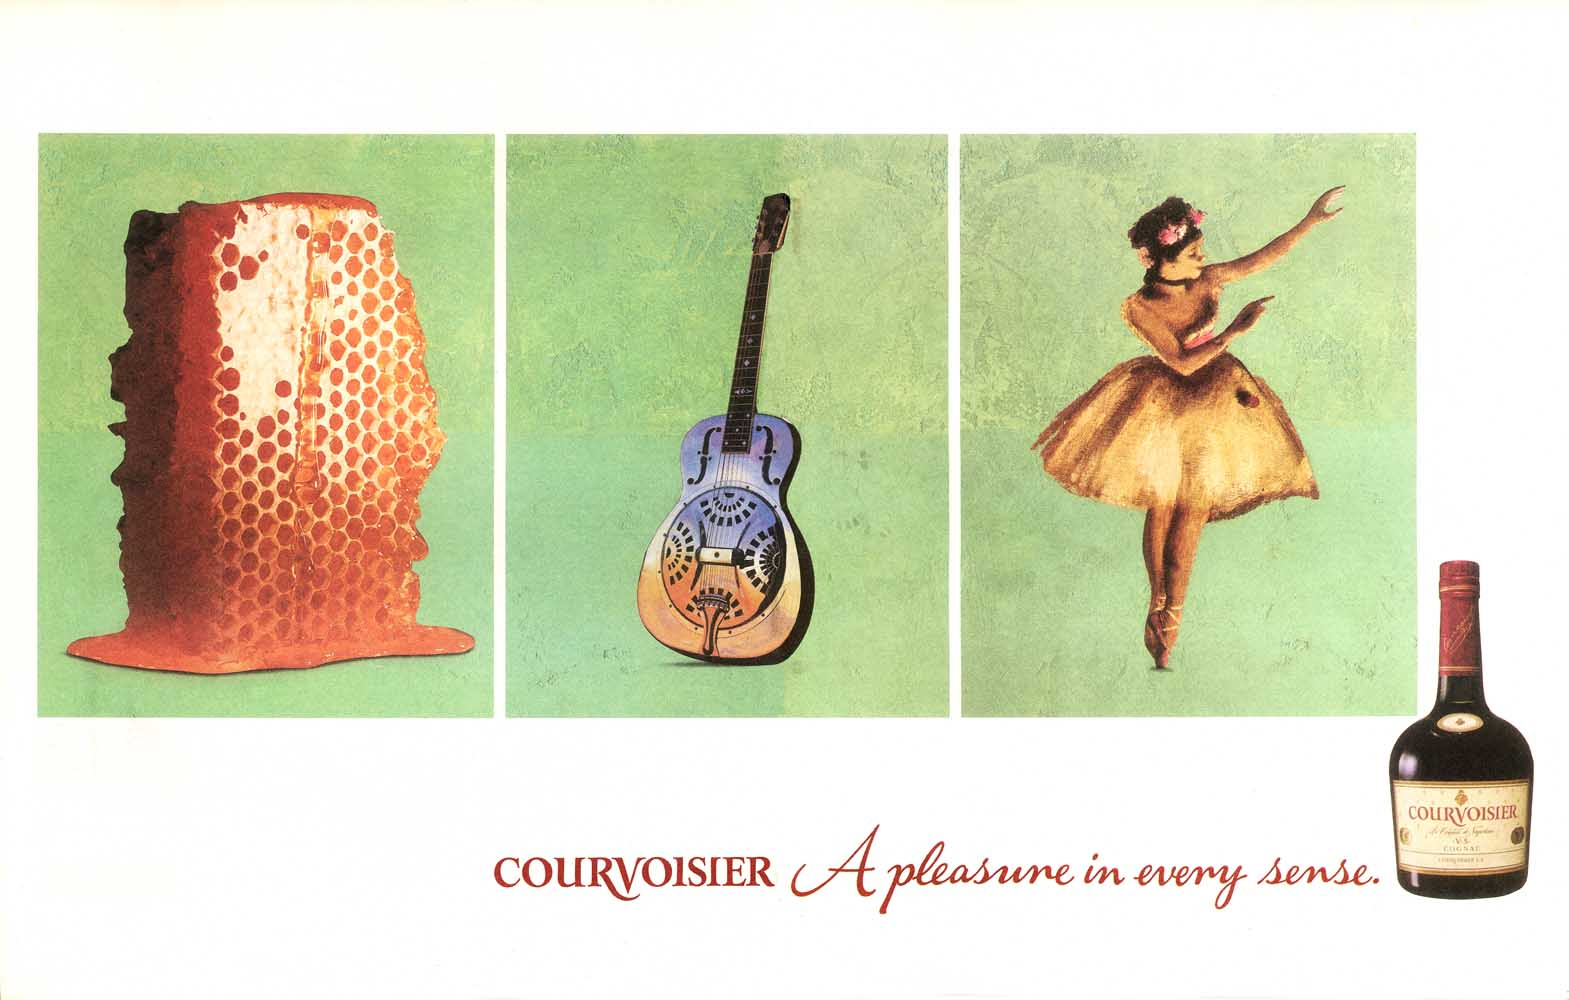 Courvoisier advertising campaign